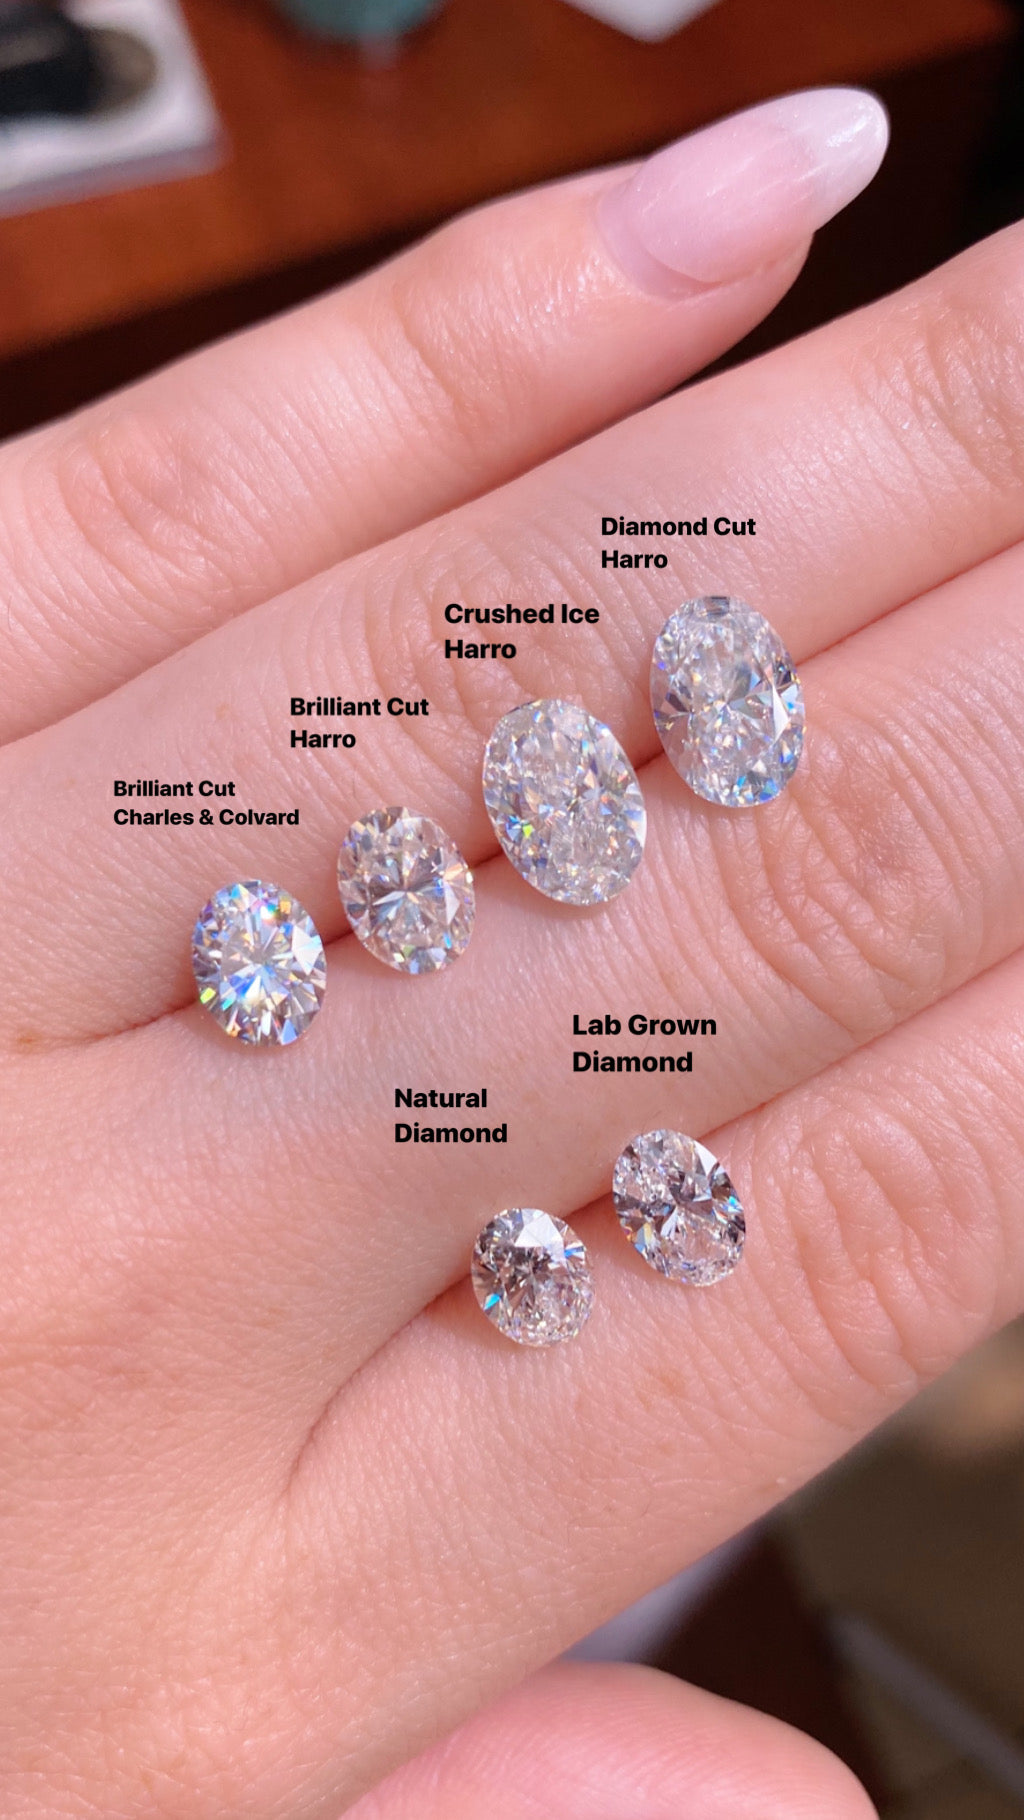 Oval Harro Gem Moissanite vs Charles and Colvard Moissanite vs Lab Diamond vs Natural Diamond